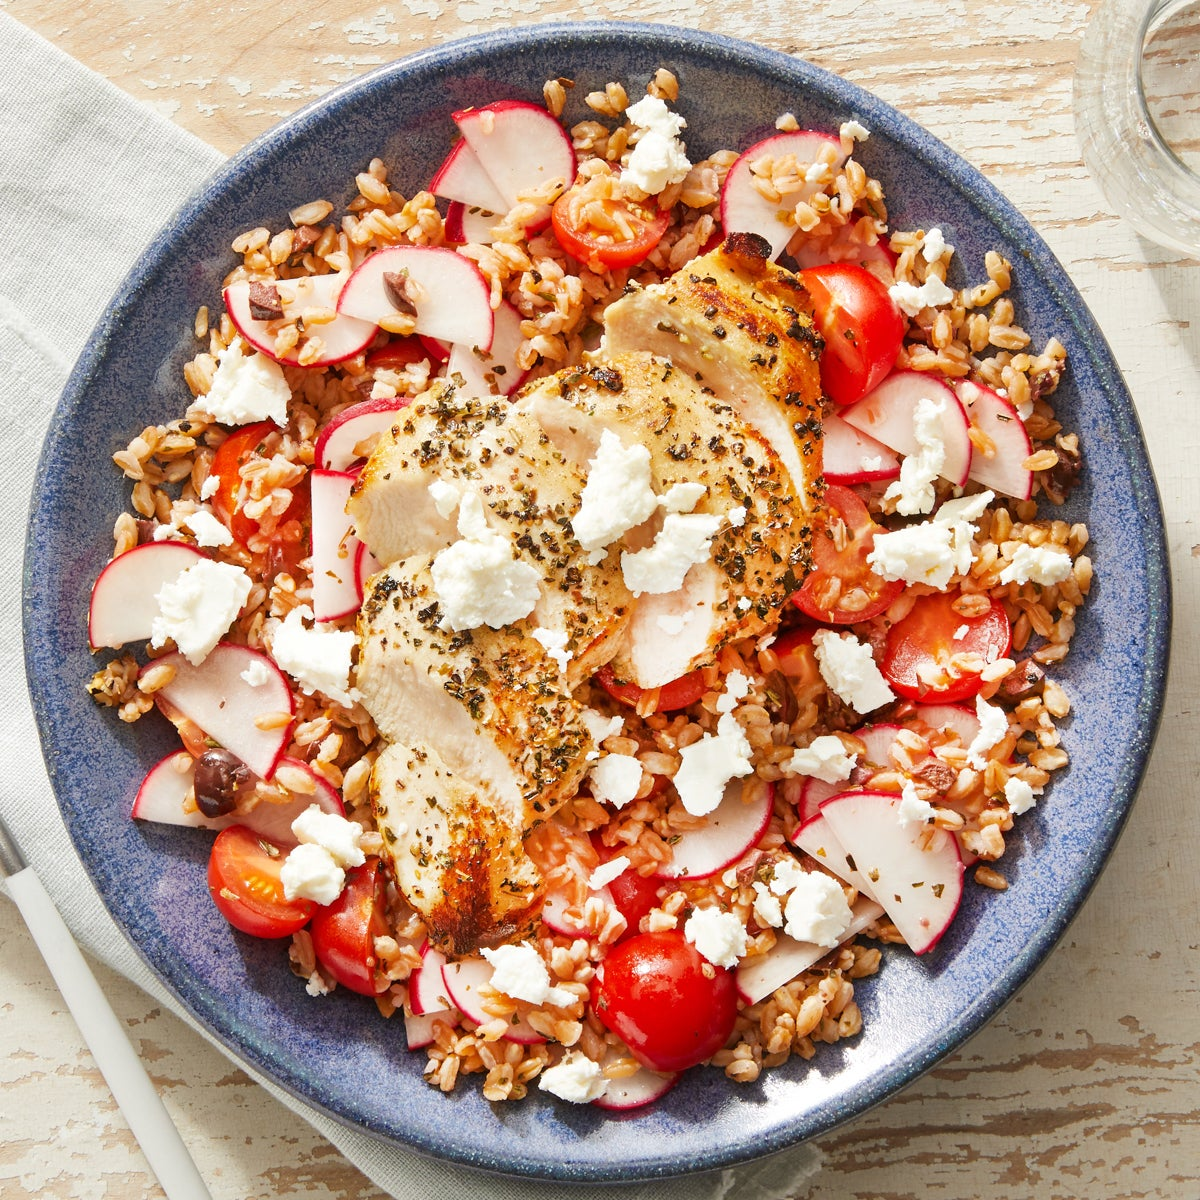 Greek Chicken & Farro Salad with Lemon-Oregano Dressing